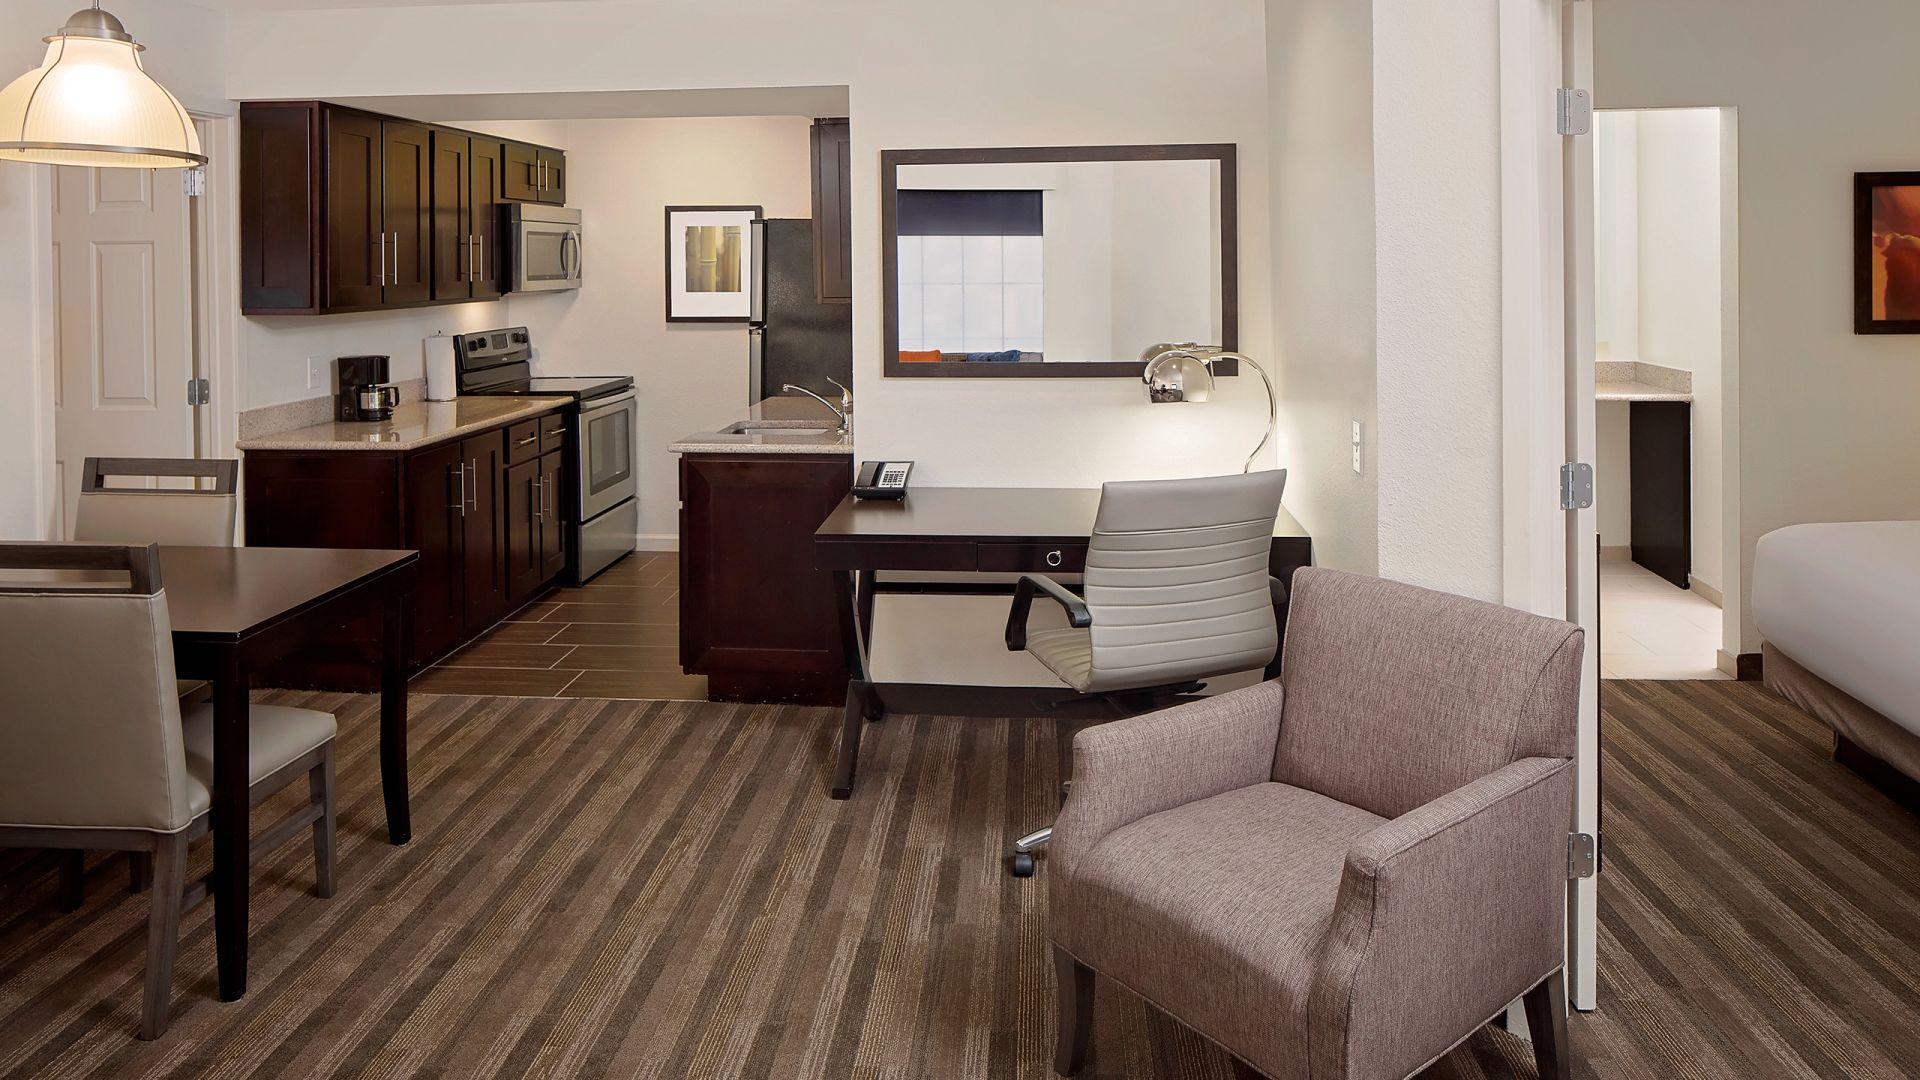 c5daa2c9081c Hyatt House Dallas   Addison two bedroom suite and kitchen